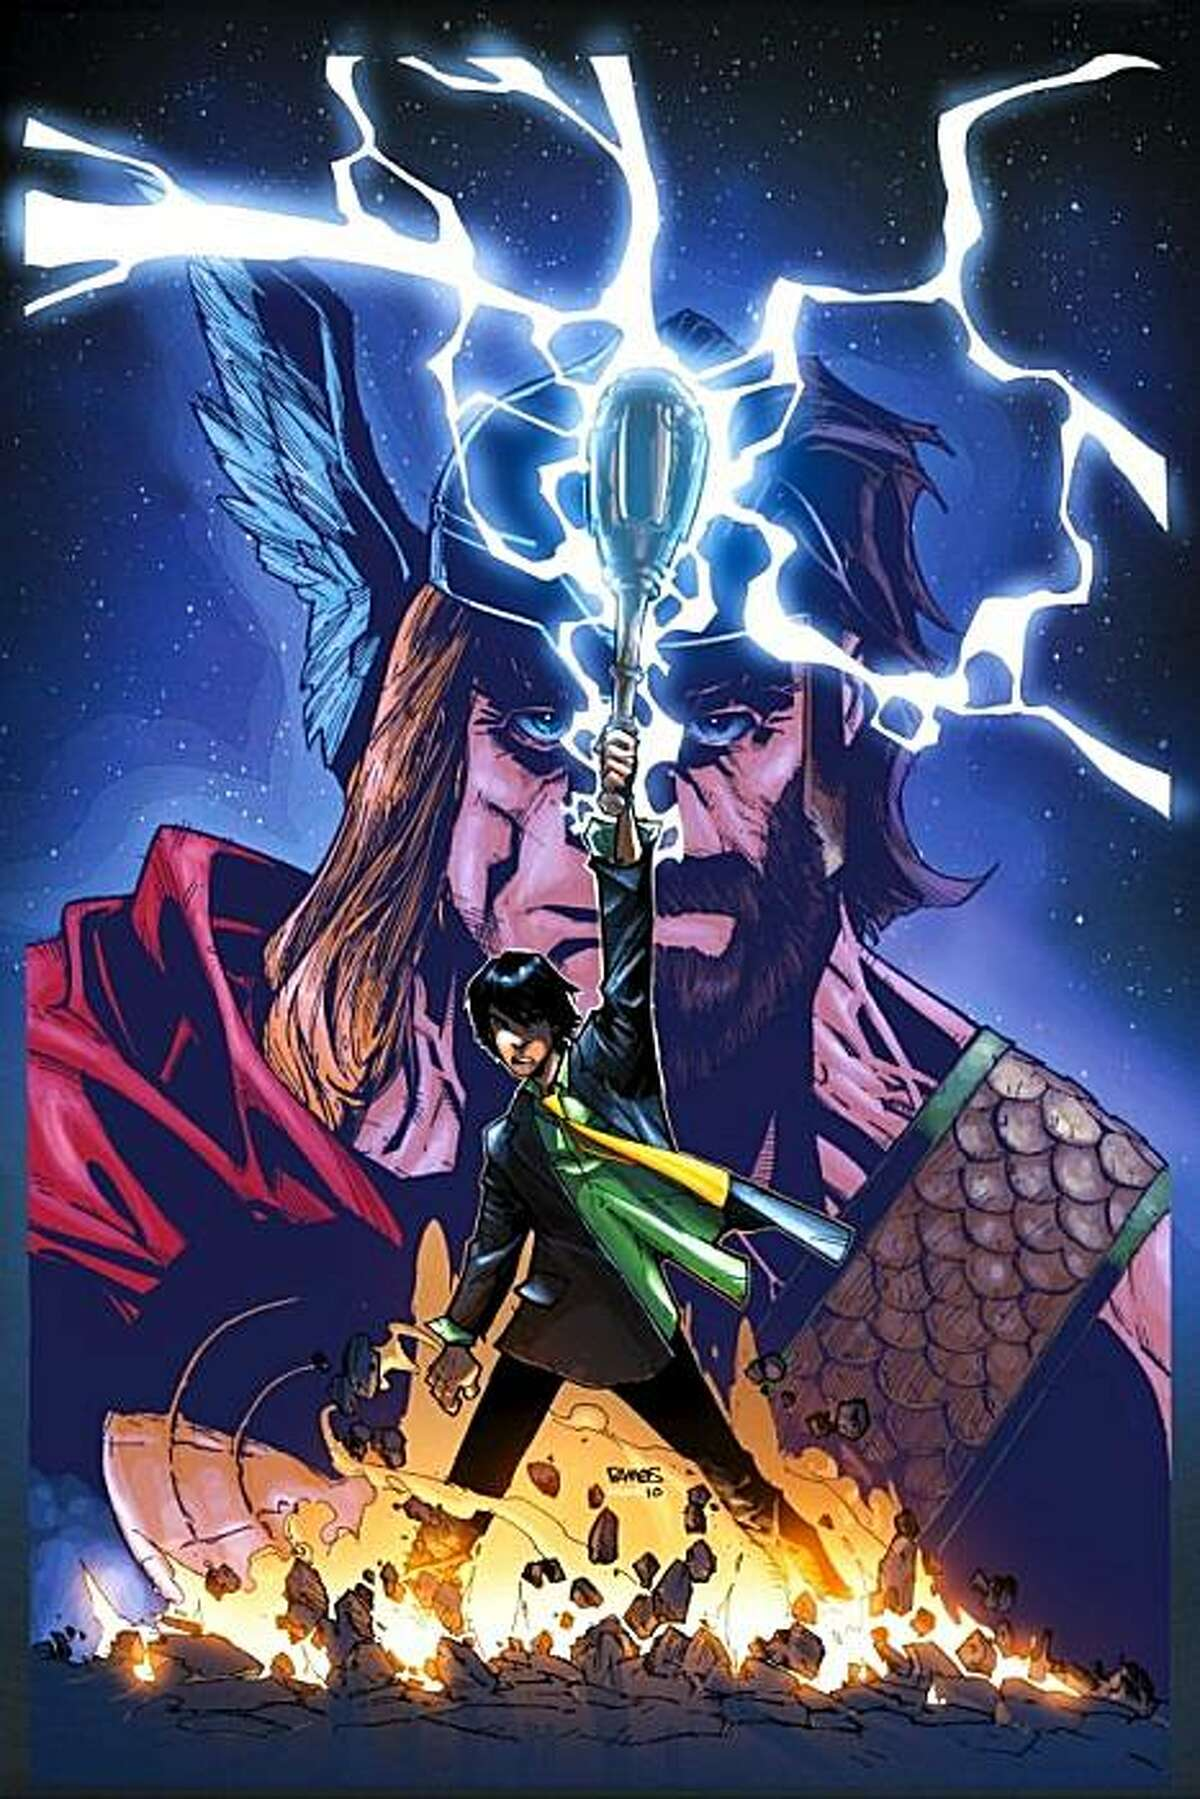 """Cover image from the forthcoming """"Heroic Age: Prince of Power."""""""